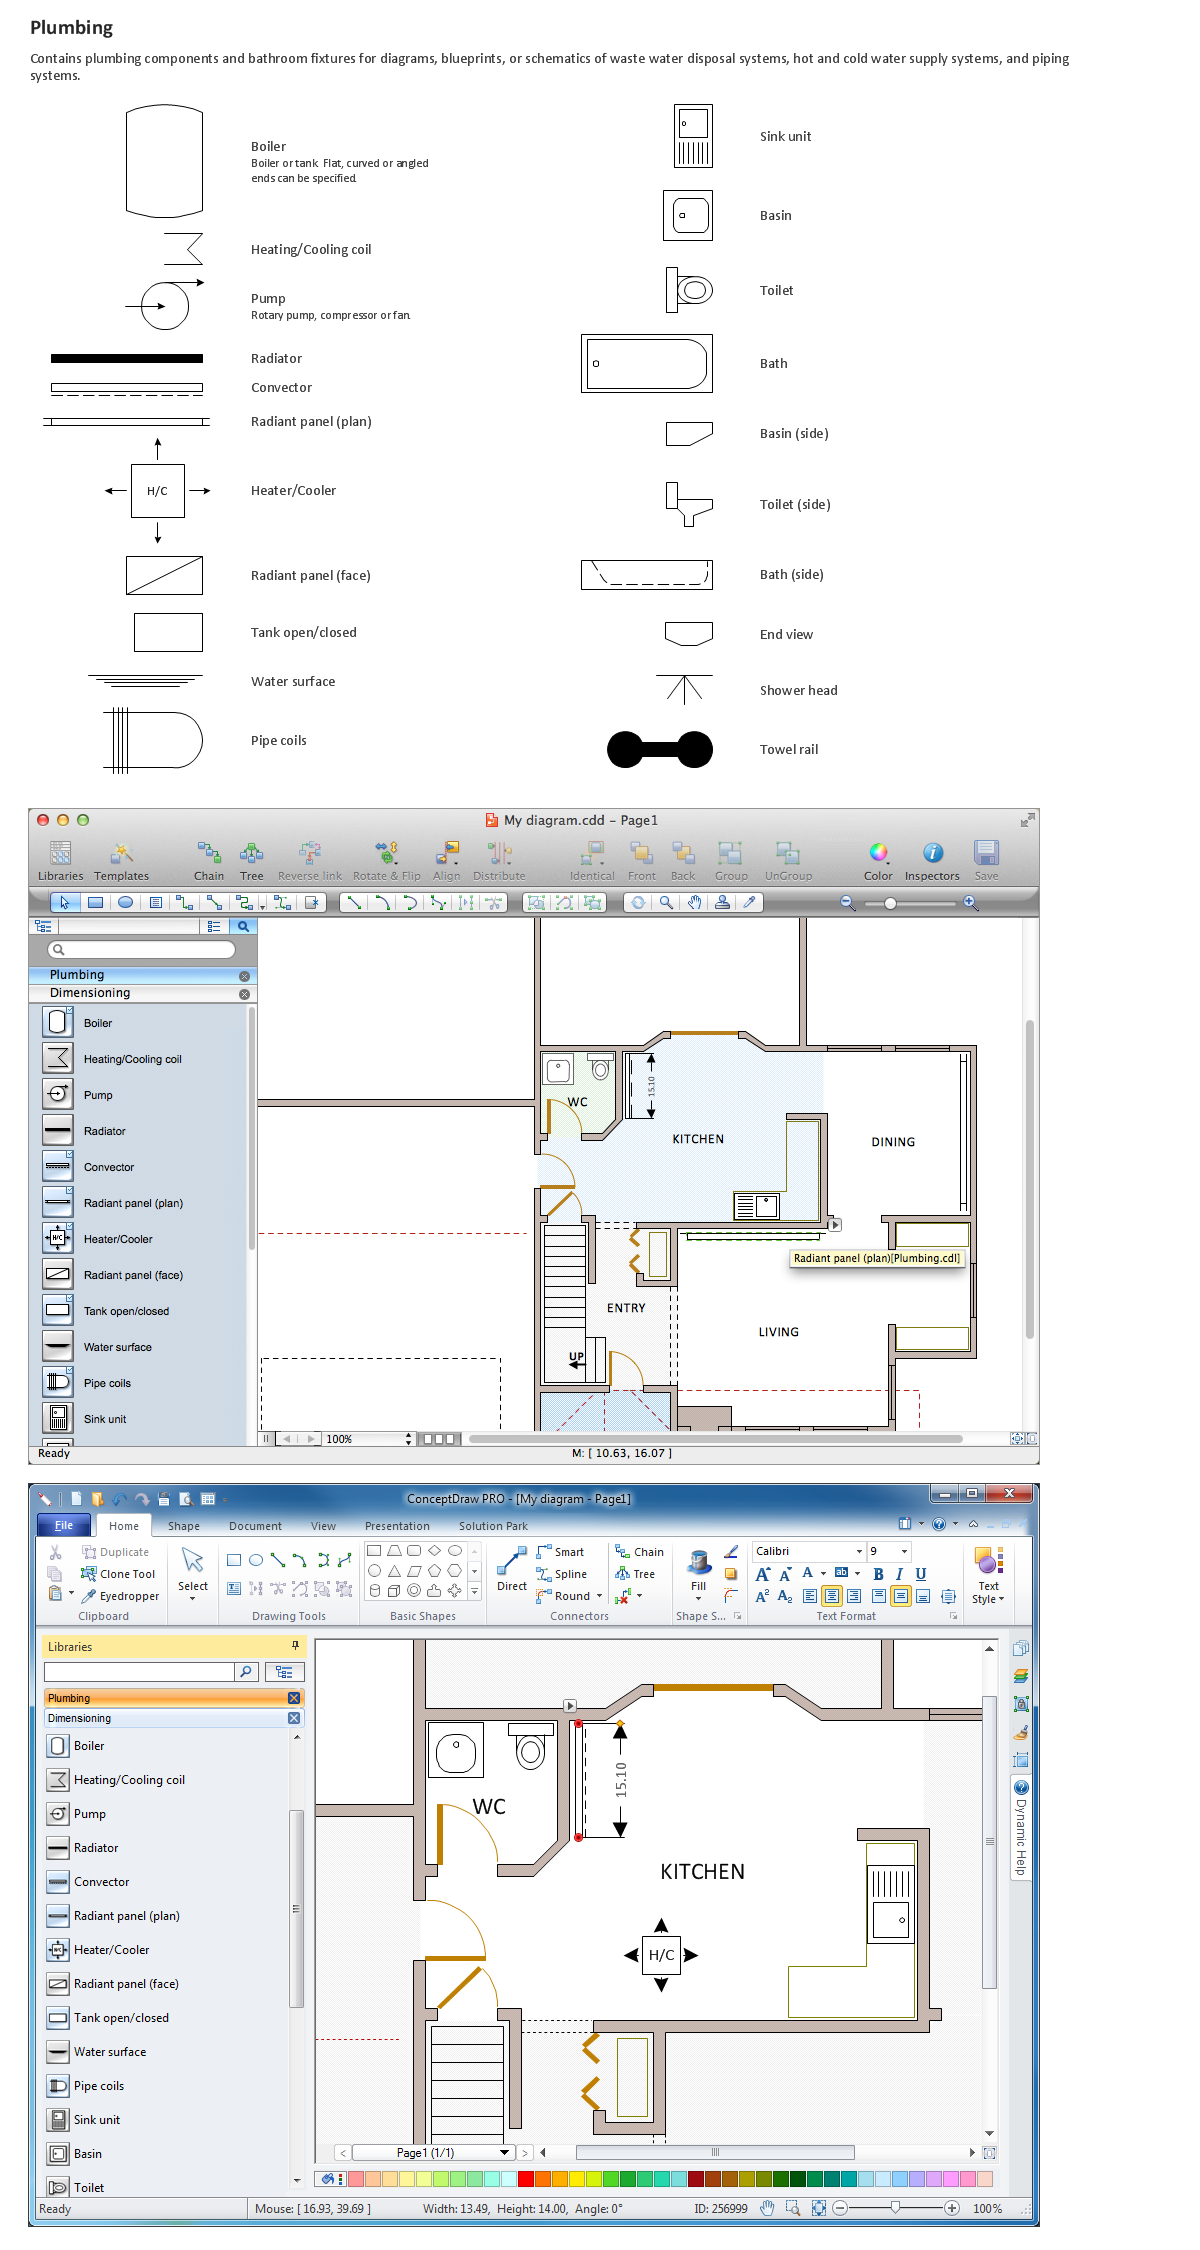 Technical drawing software building drawing design Software for house construction plan